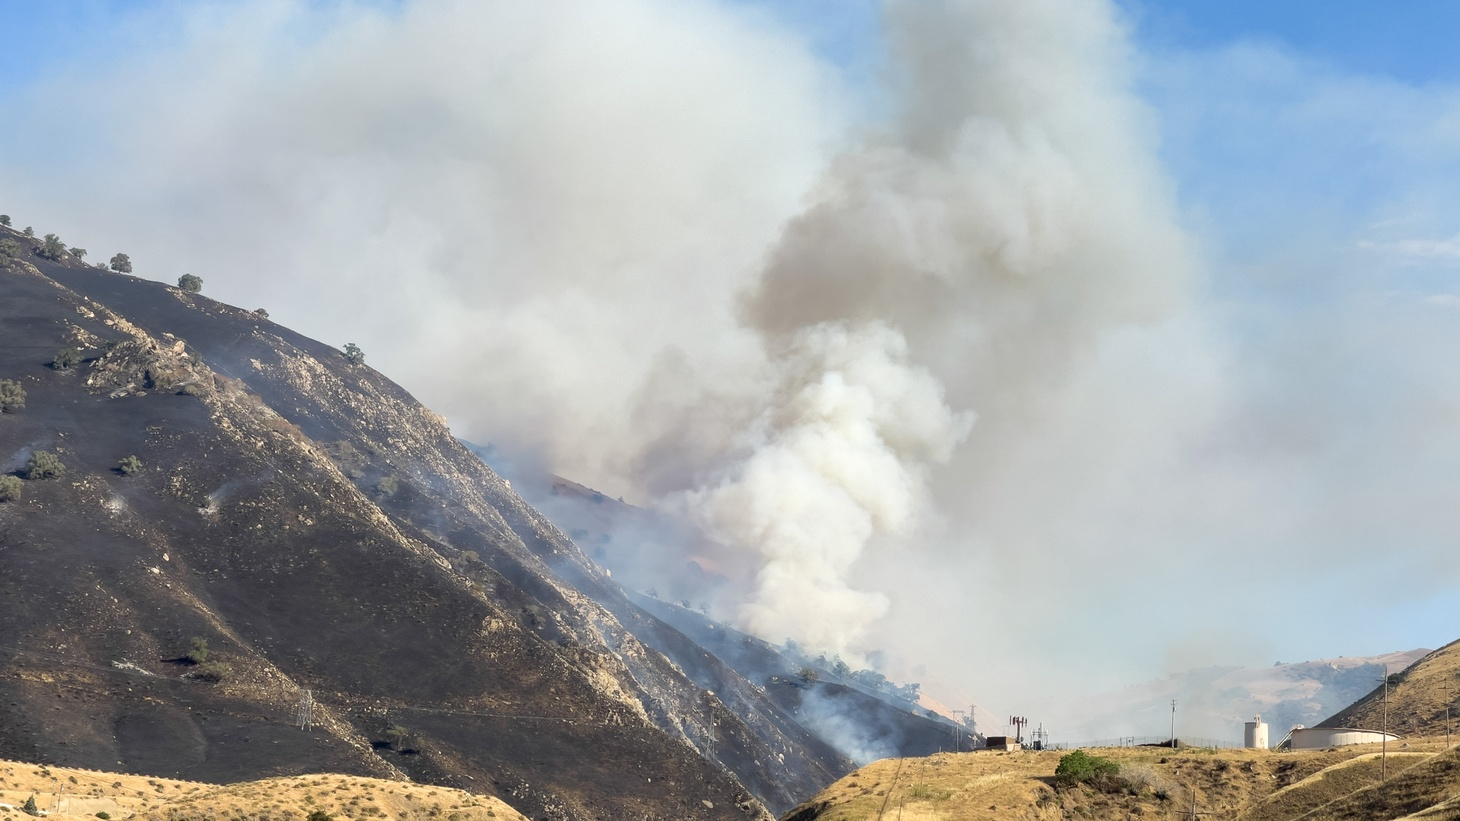 The Shell Fire burns along the 5 freeway in Grapevine, California, June 27, 2021.